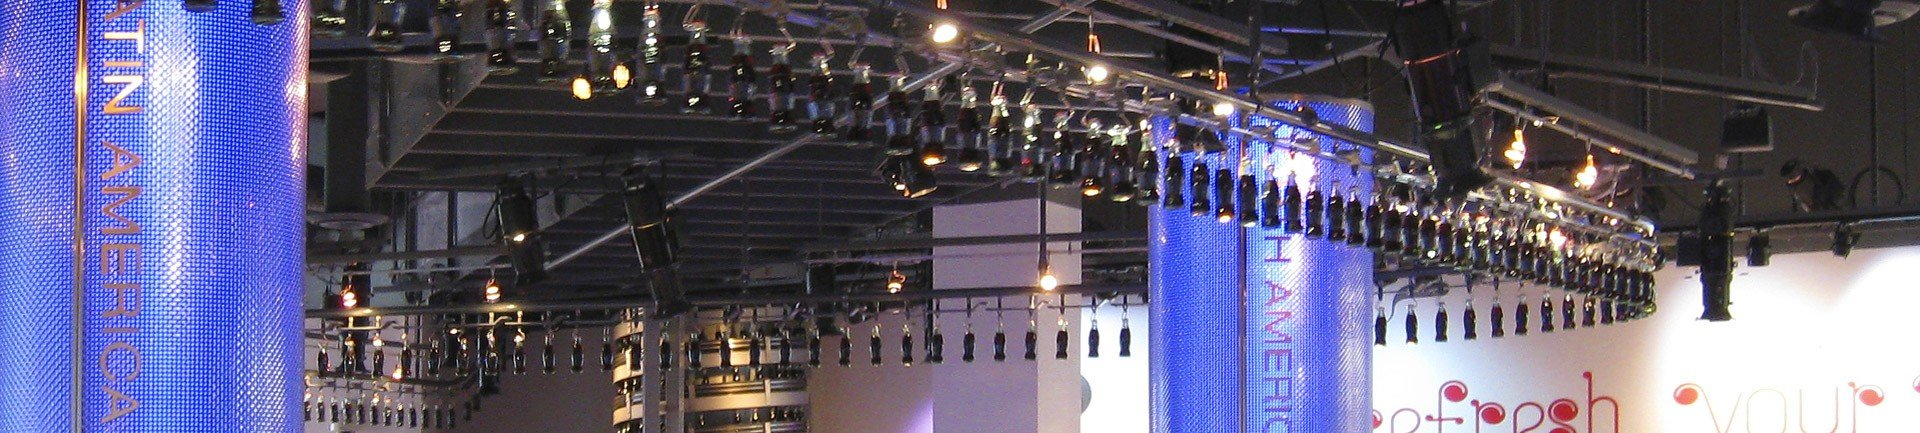 Overhead conveyor for retail store and restaurant displays.